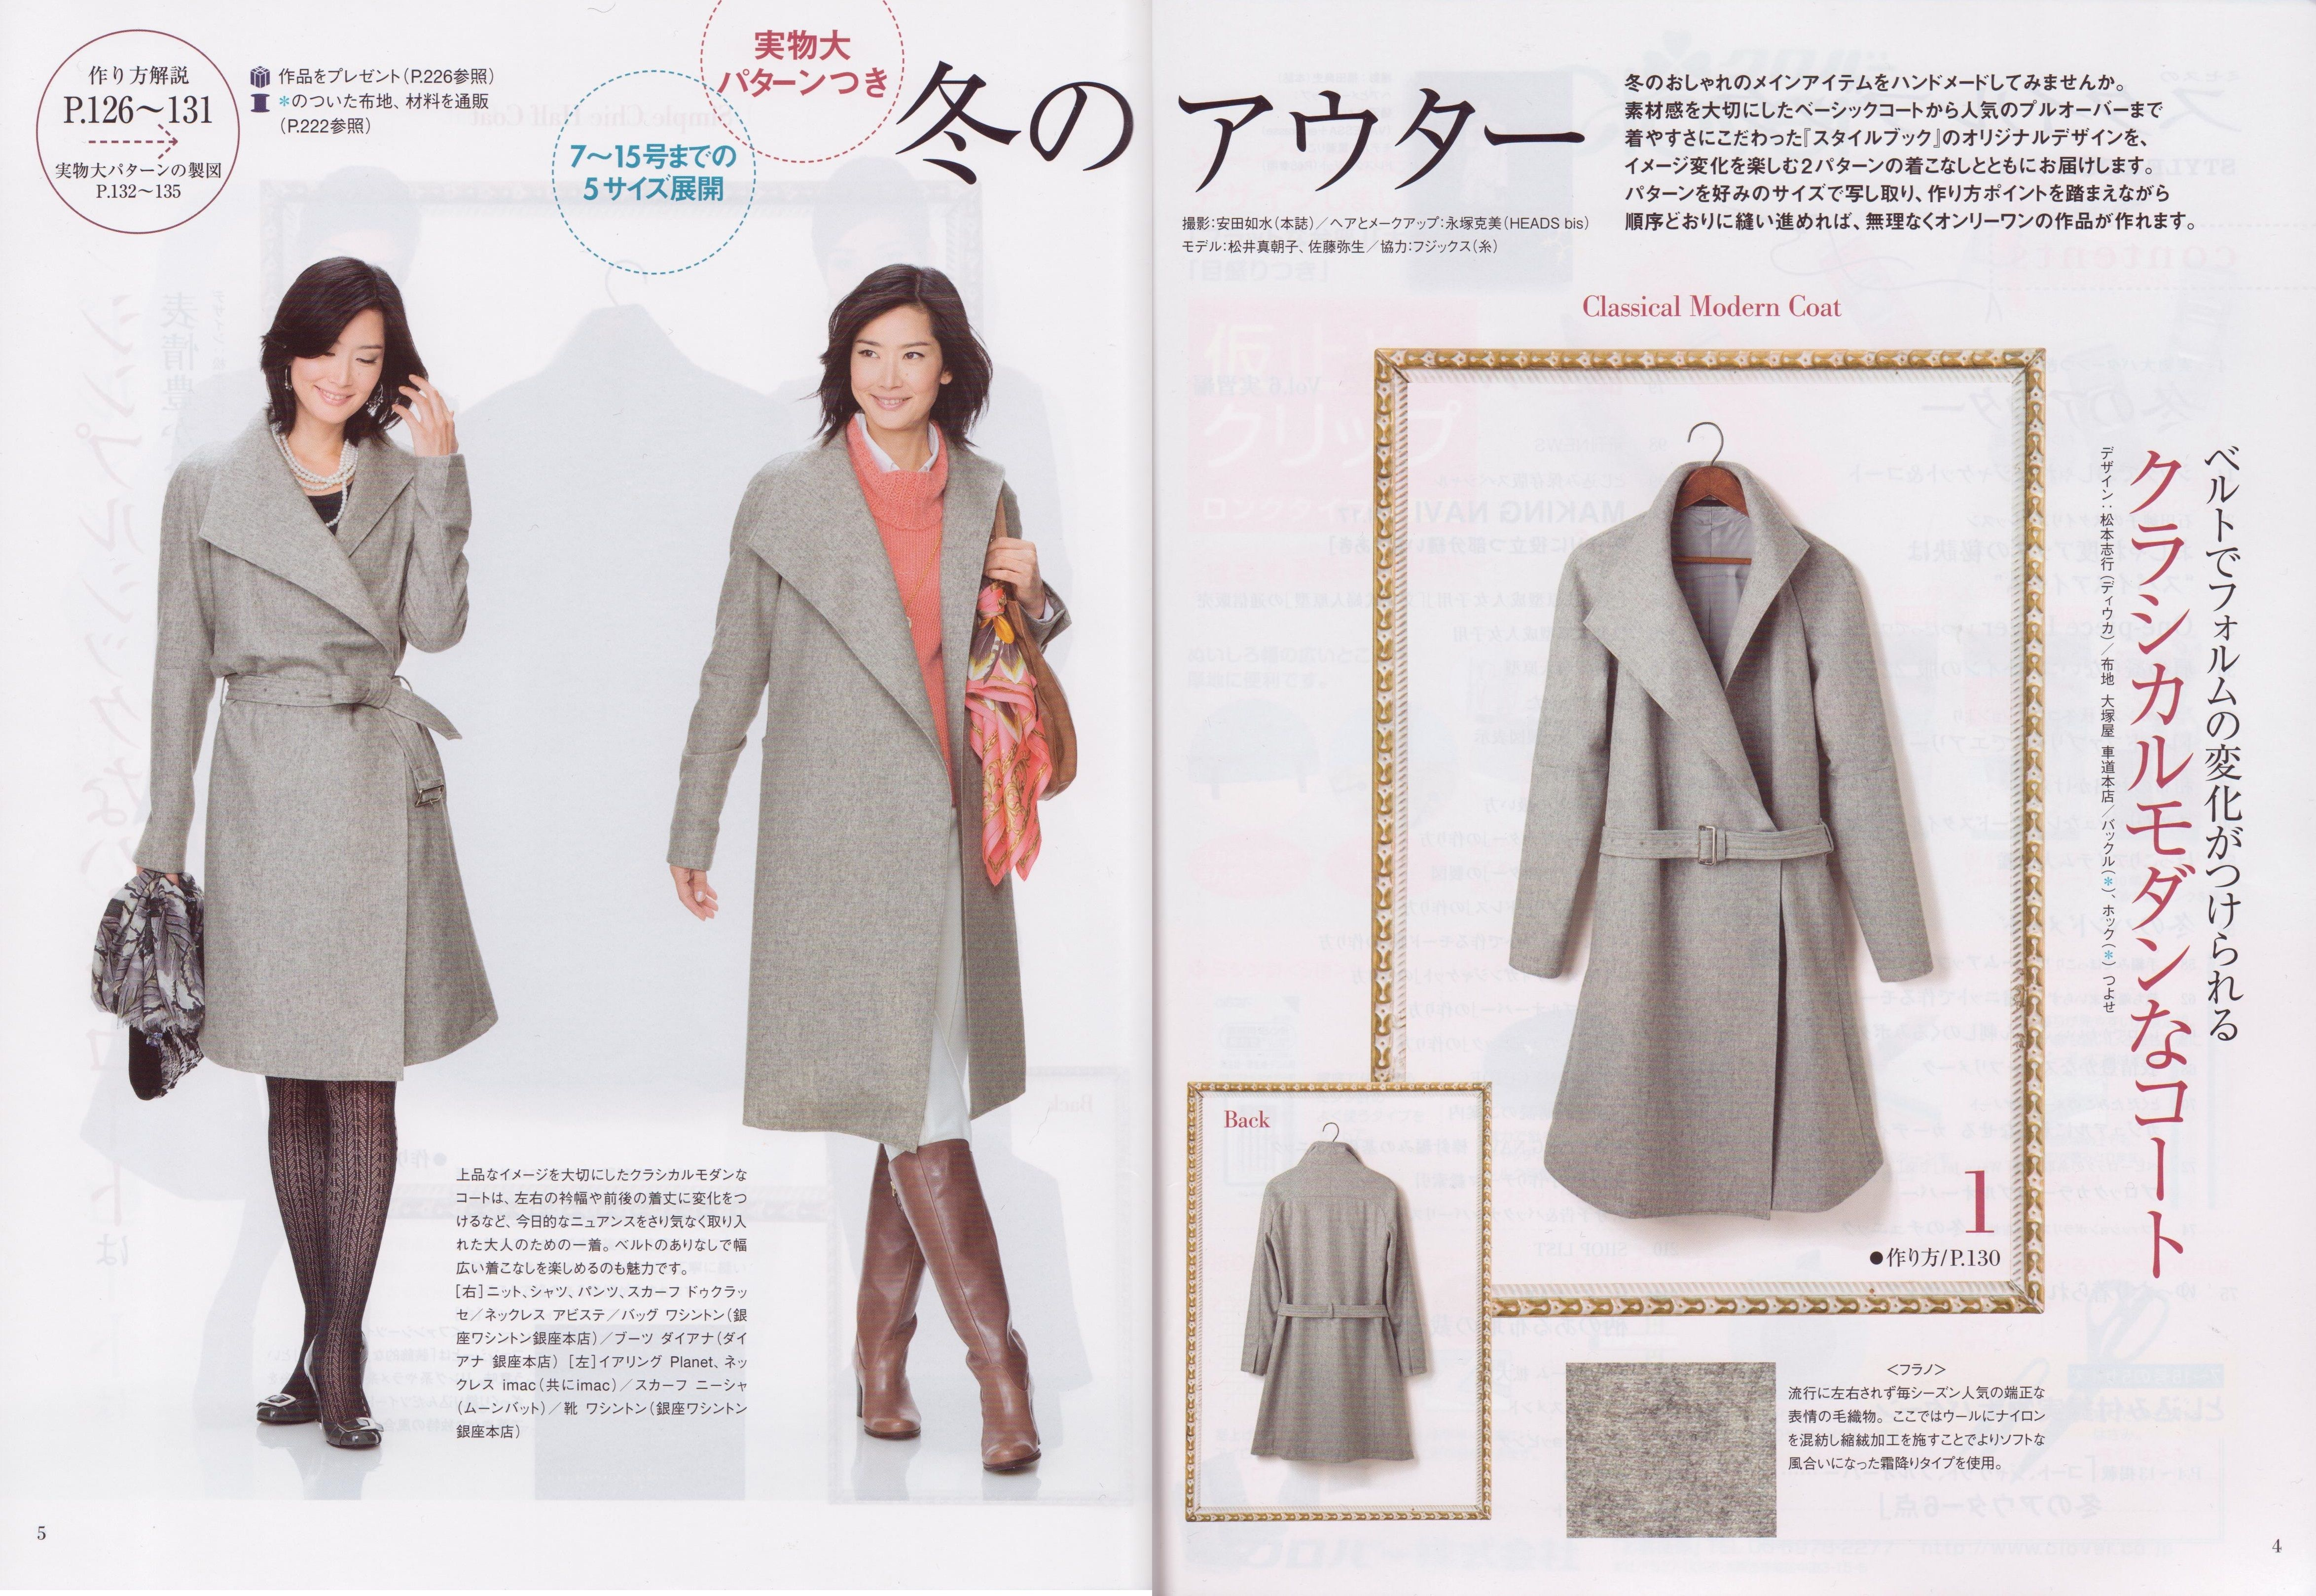 How to sew a coat